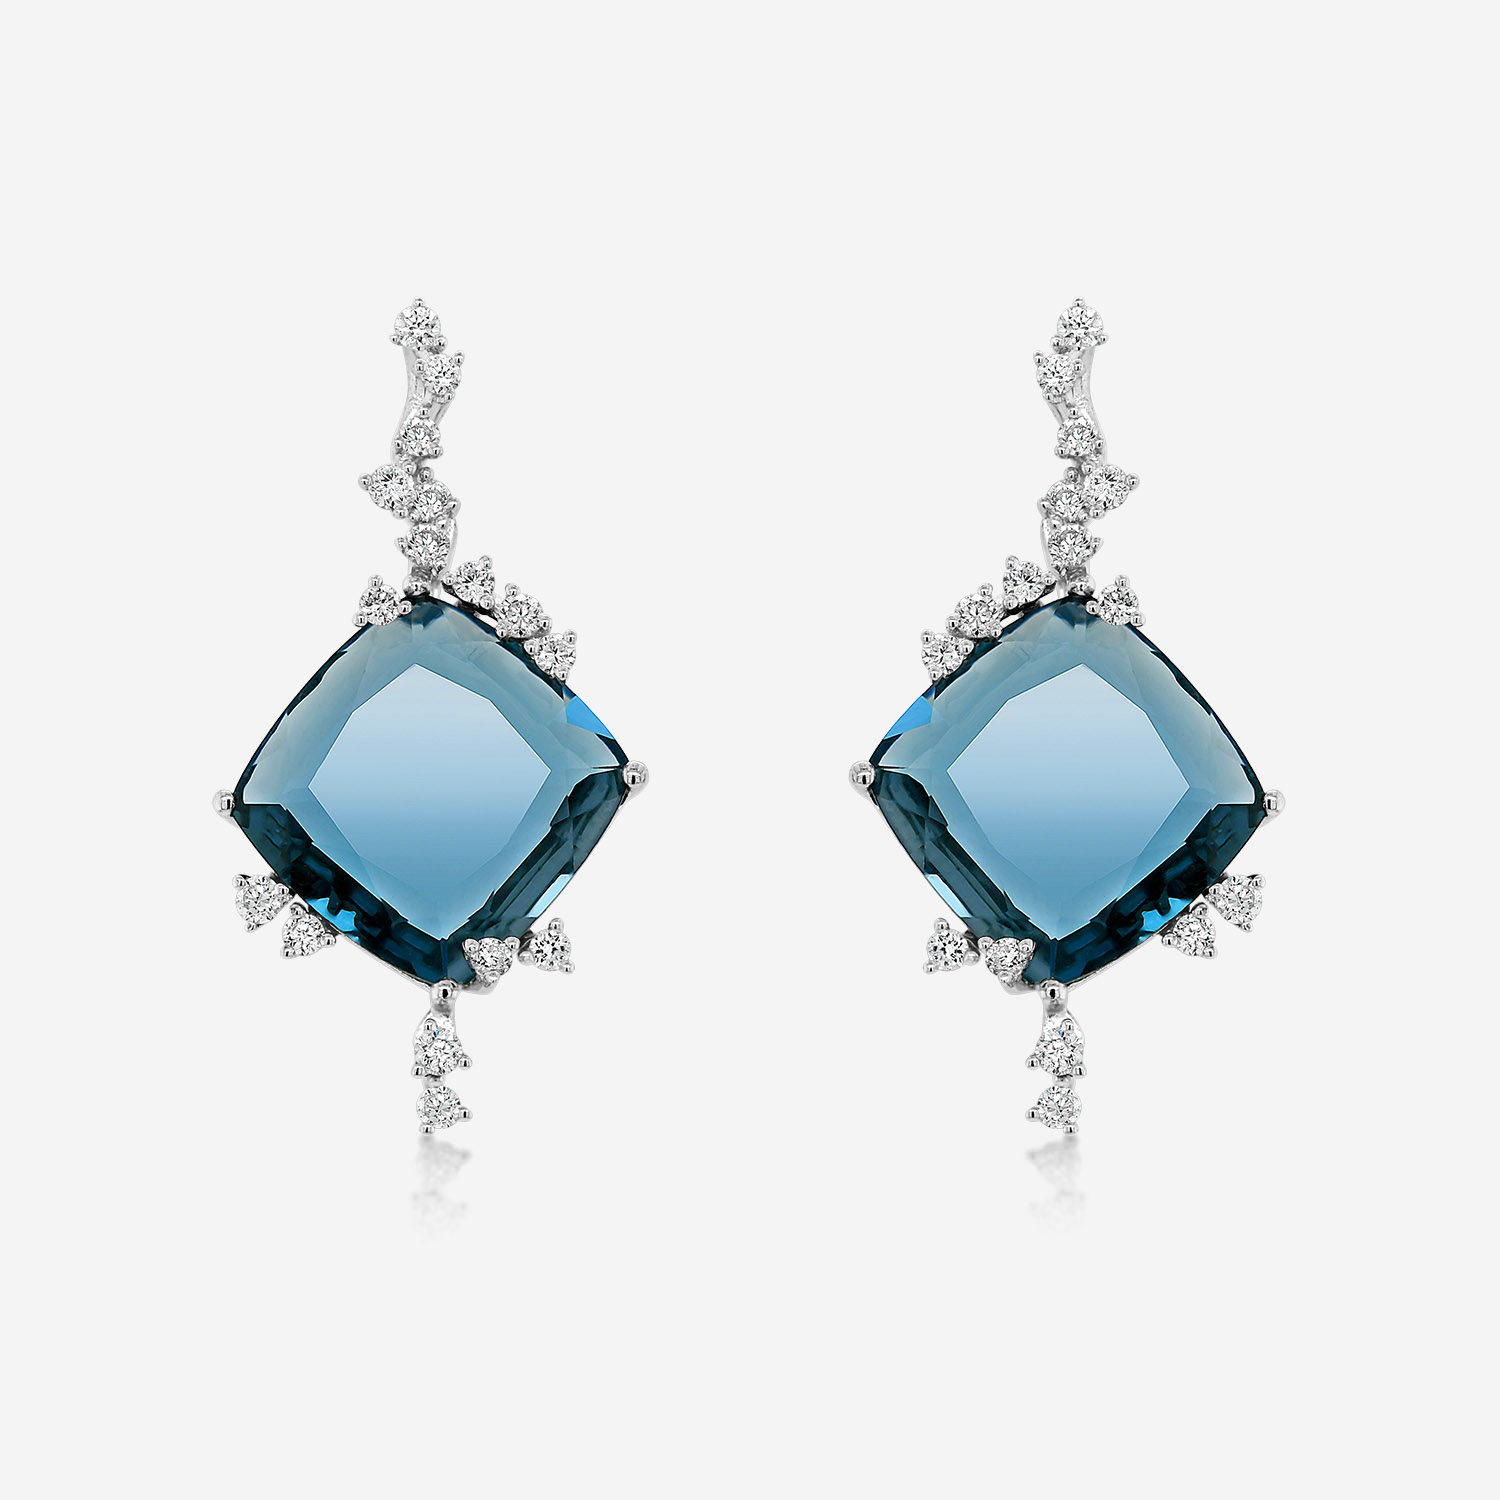 Cercei Diamante Cercei cu diamante si blue topaz Alb Diamonds <br/>London Blue Topaz